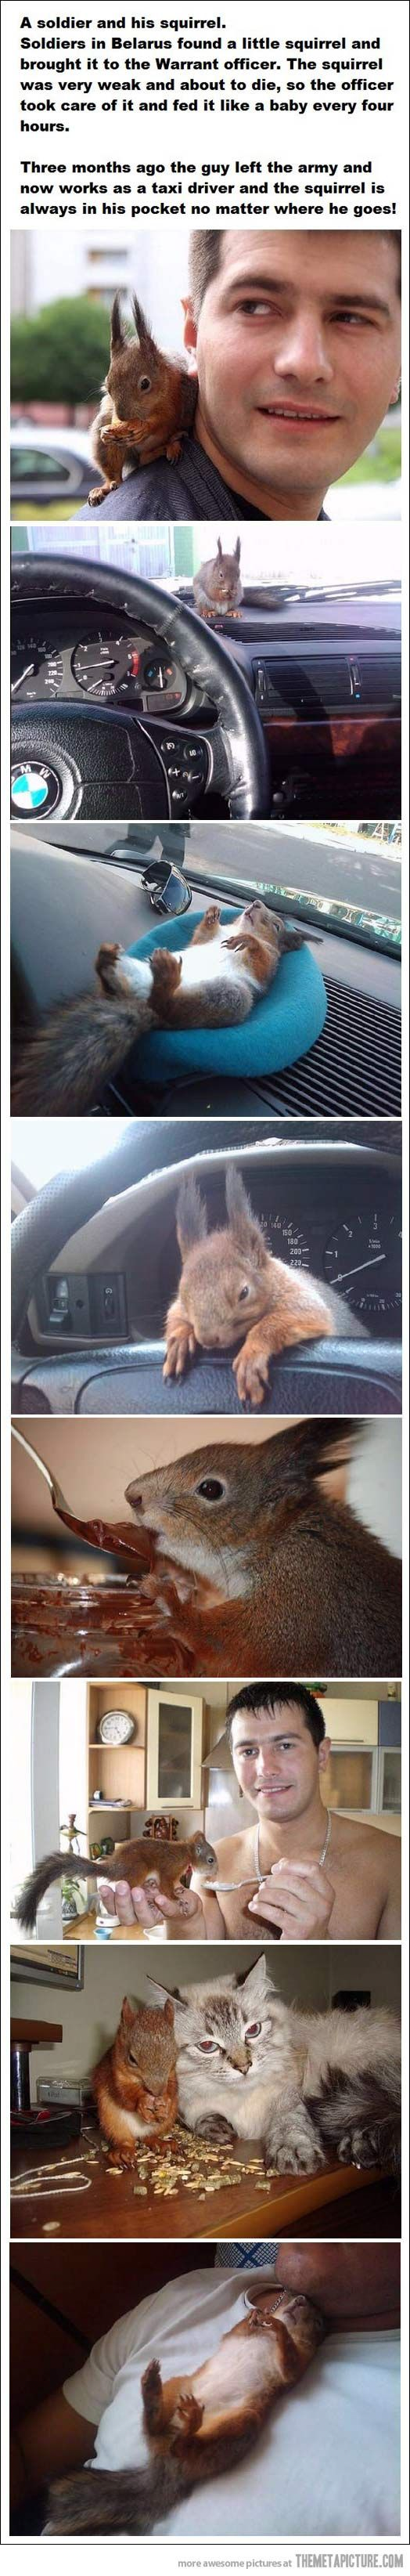 Rescued squirrel.